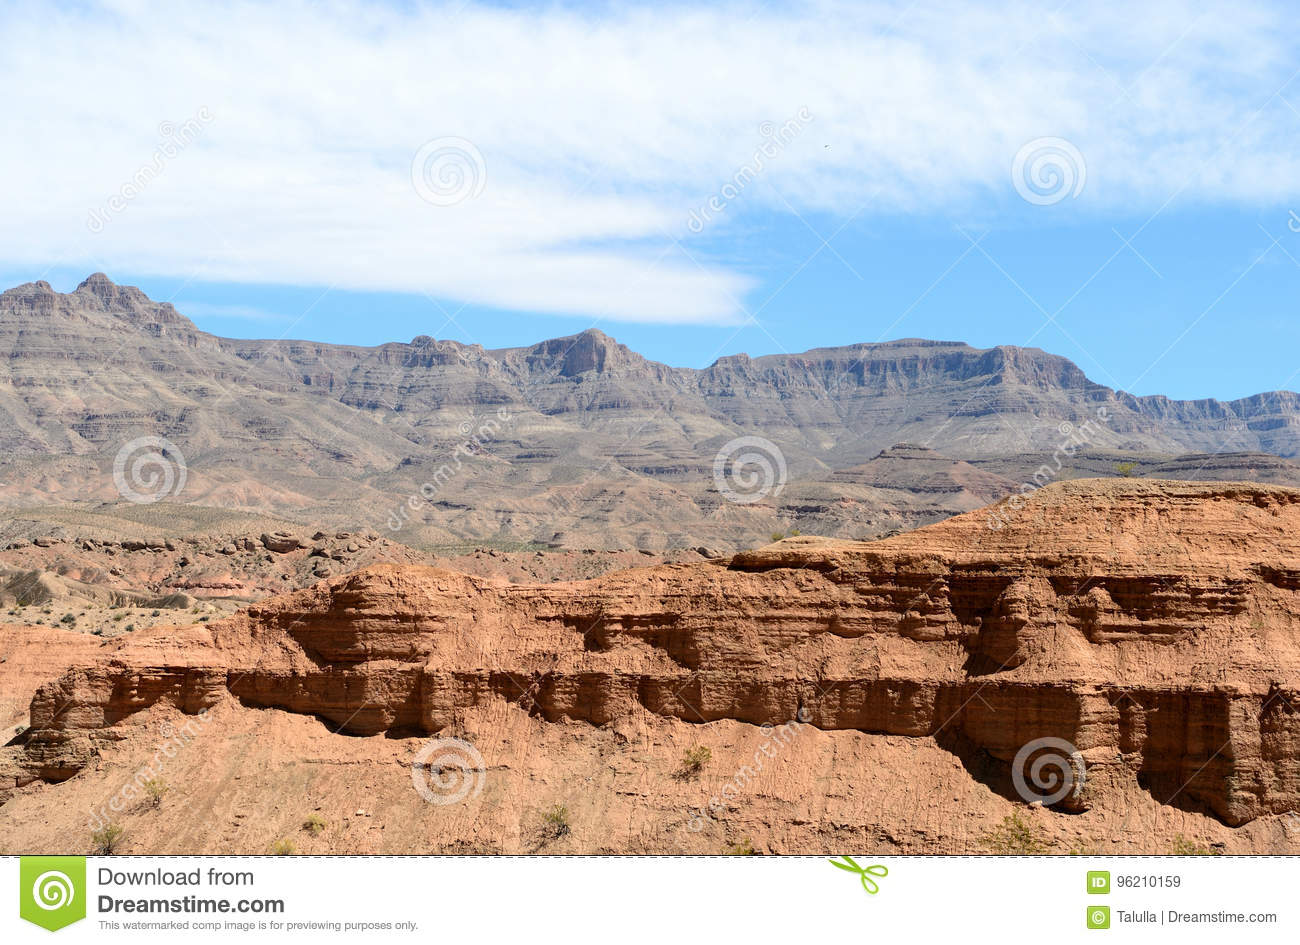 Landscapes on Pierce Ferry Road, Meadview. Grand Canyon National park, Arizona